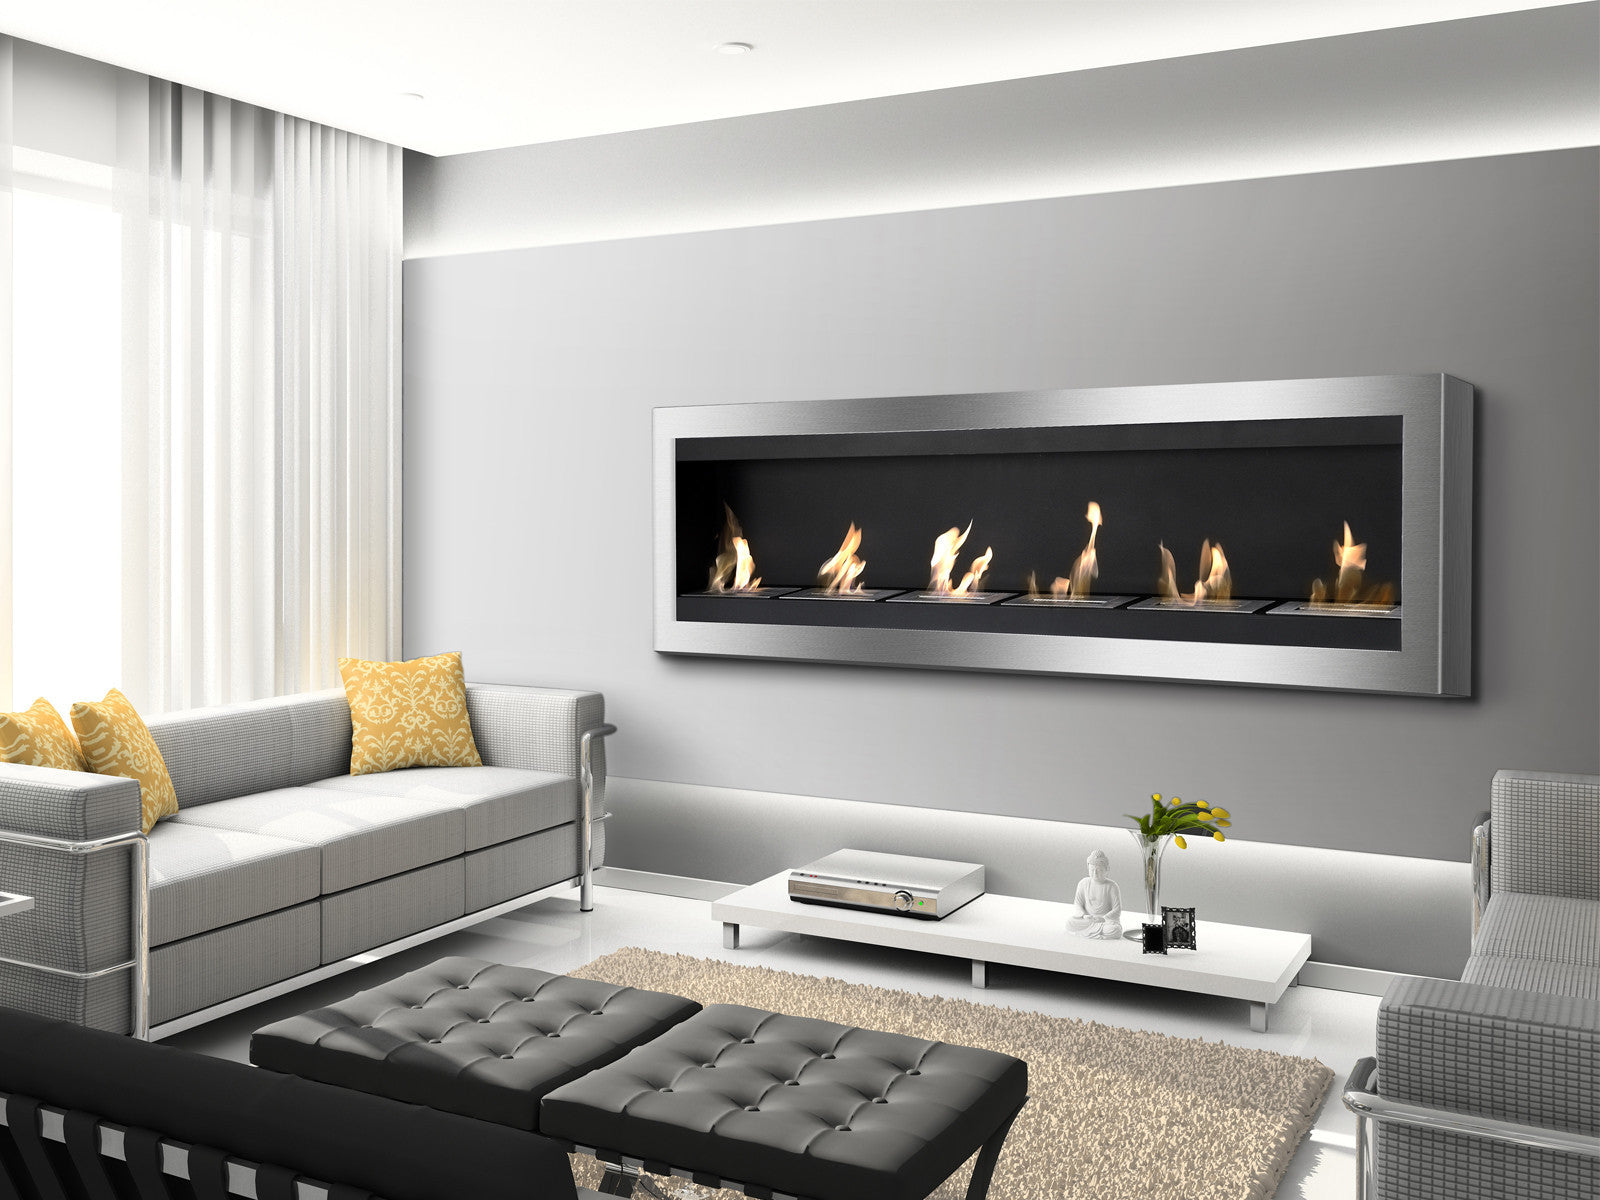 "Ignis Maximum - 83"" Wall Mounted Ethanol Fireplace (WMF-012)"